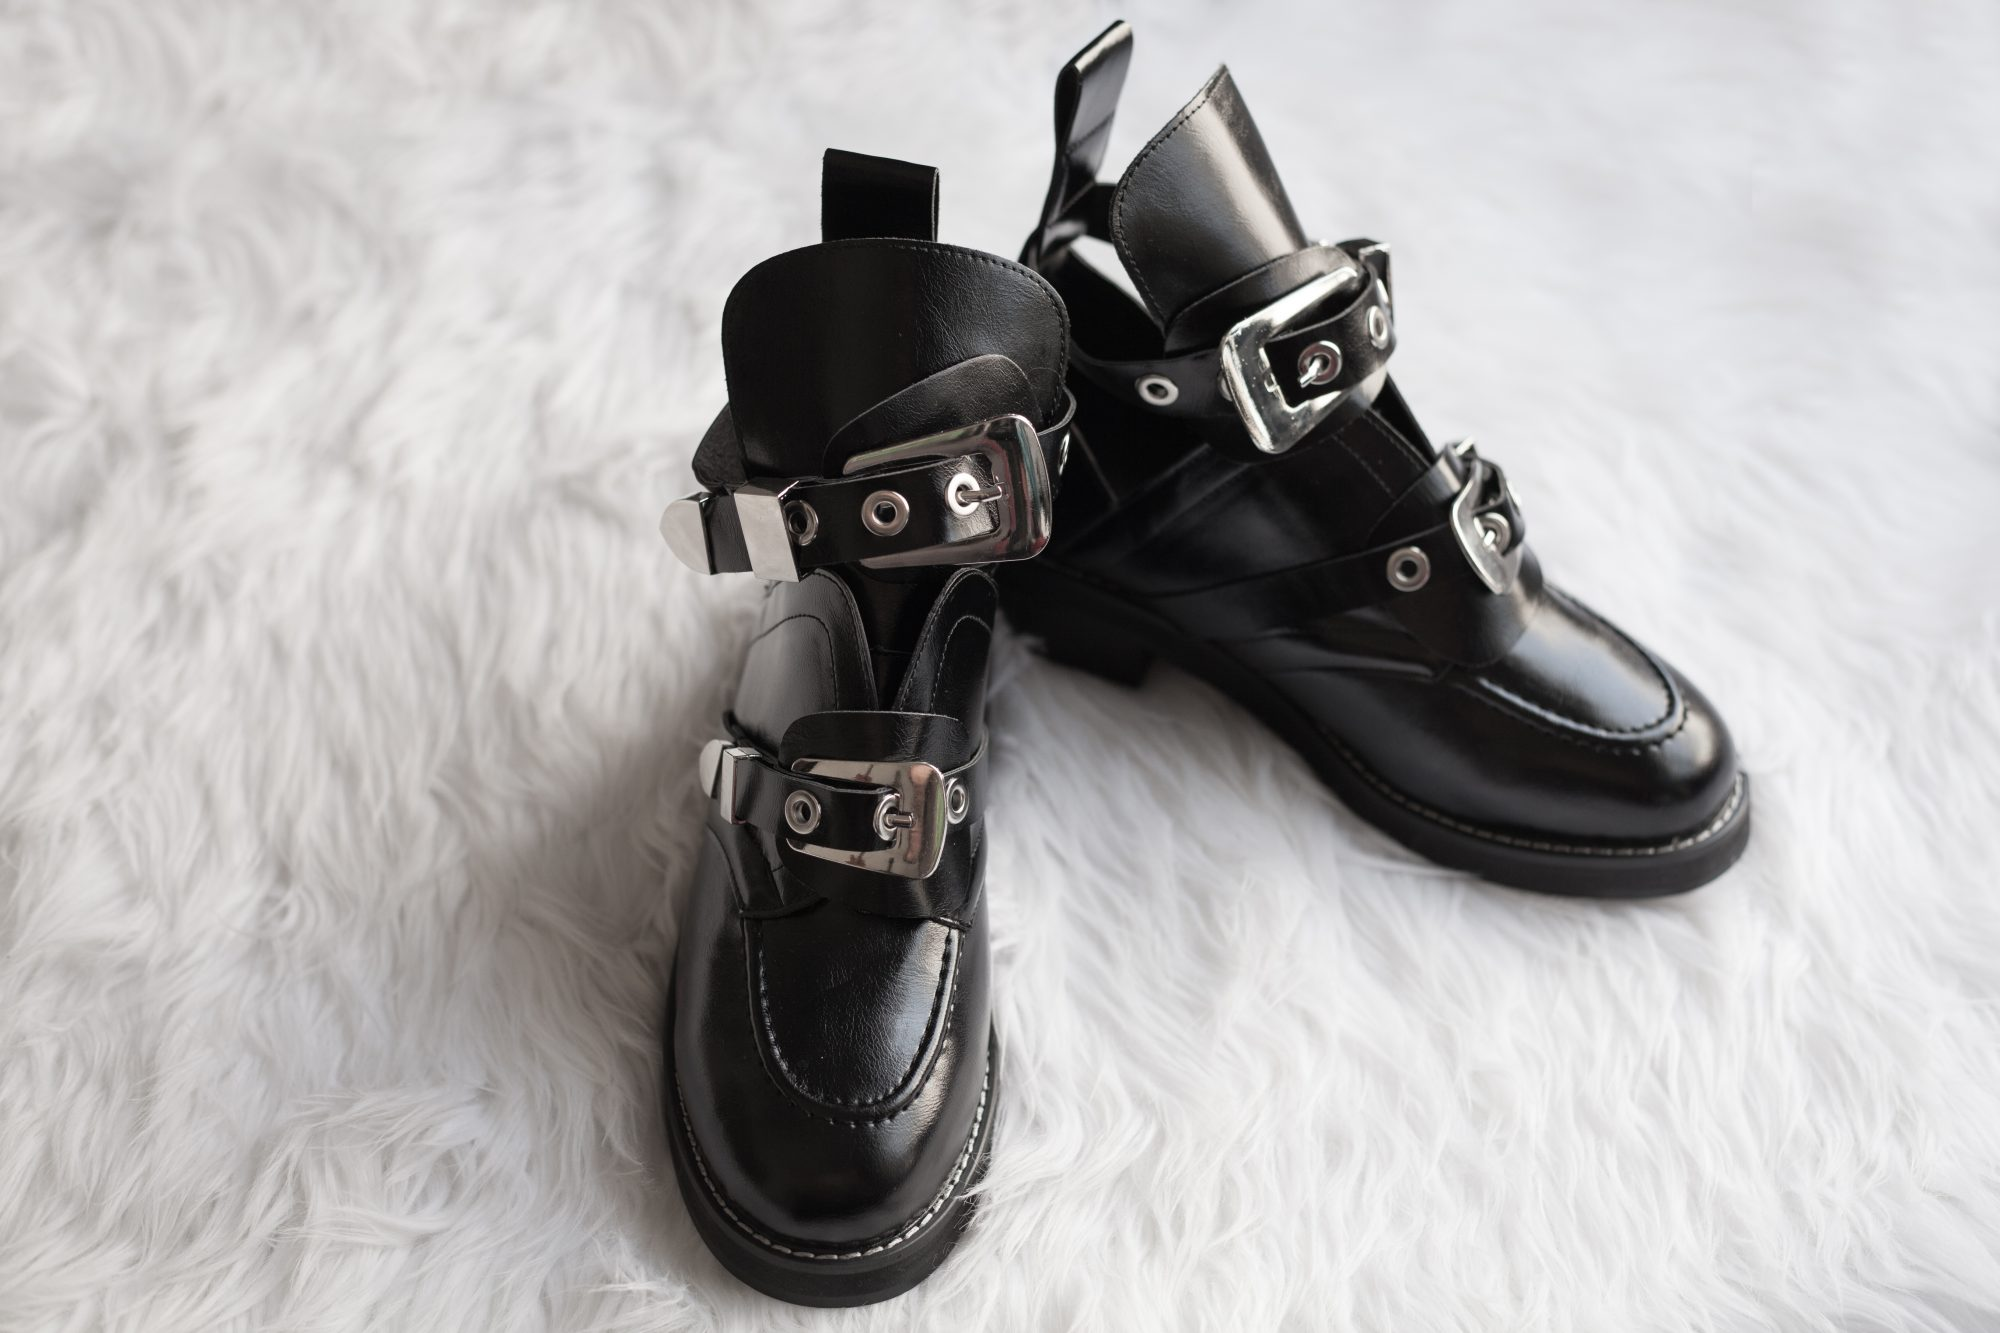 The Balenciaga Ceinture ankle boot costs a whopping $1,275. Here's a pair of genuine leather dupes for just $100. - www.theballeronabudget.com